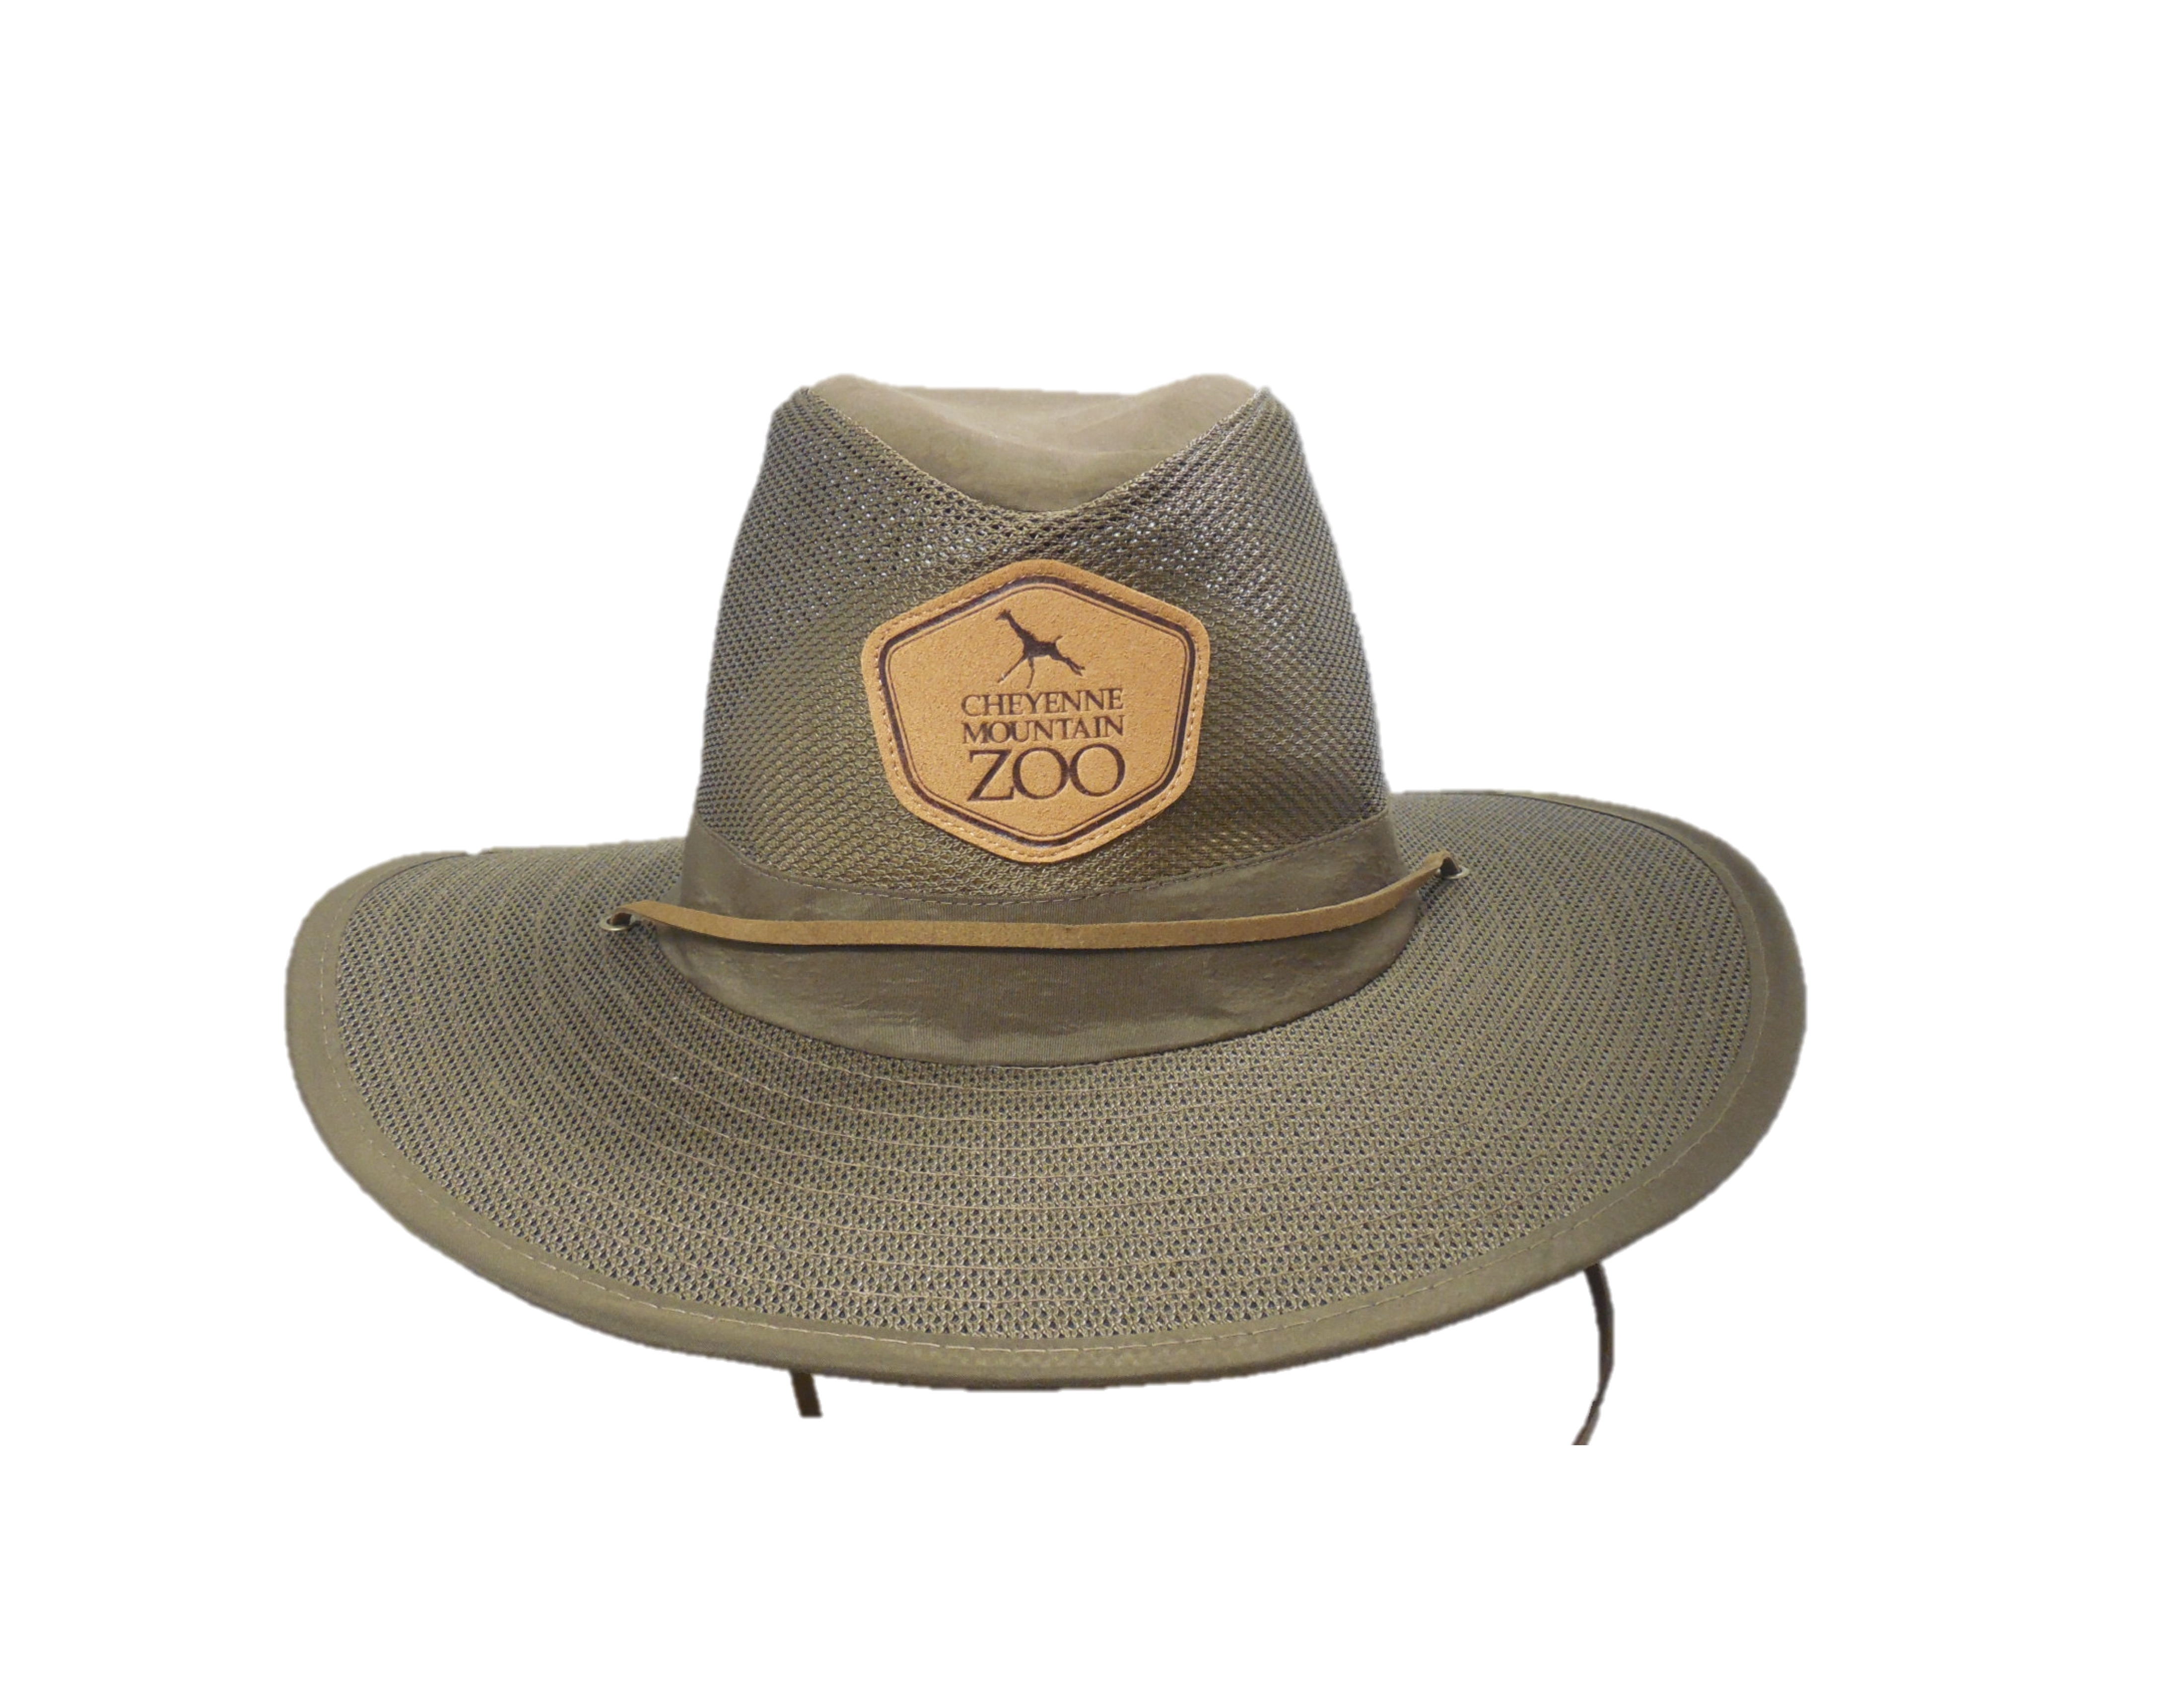 ADULT MESH AUSSIE WITH CHEYENNE MOUNTAIN ZOO LOGO PATCH-BROWN